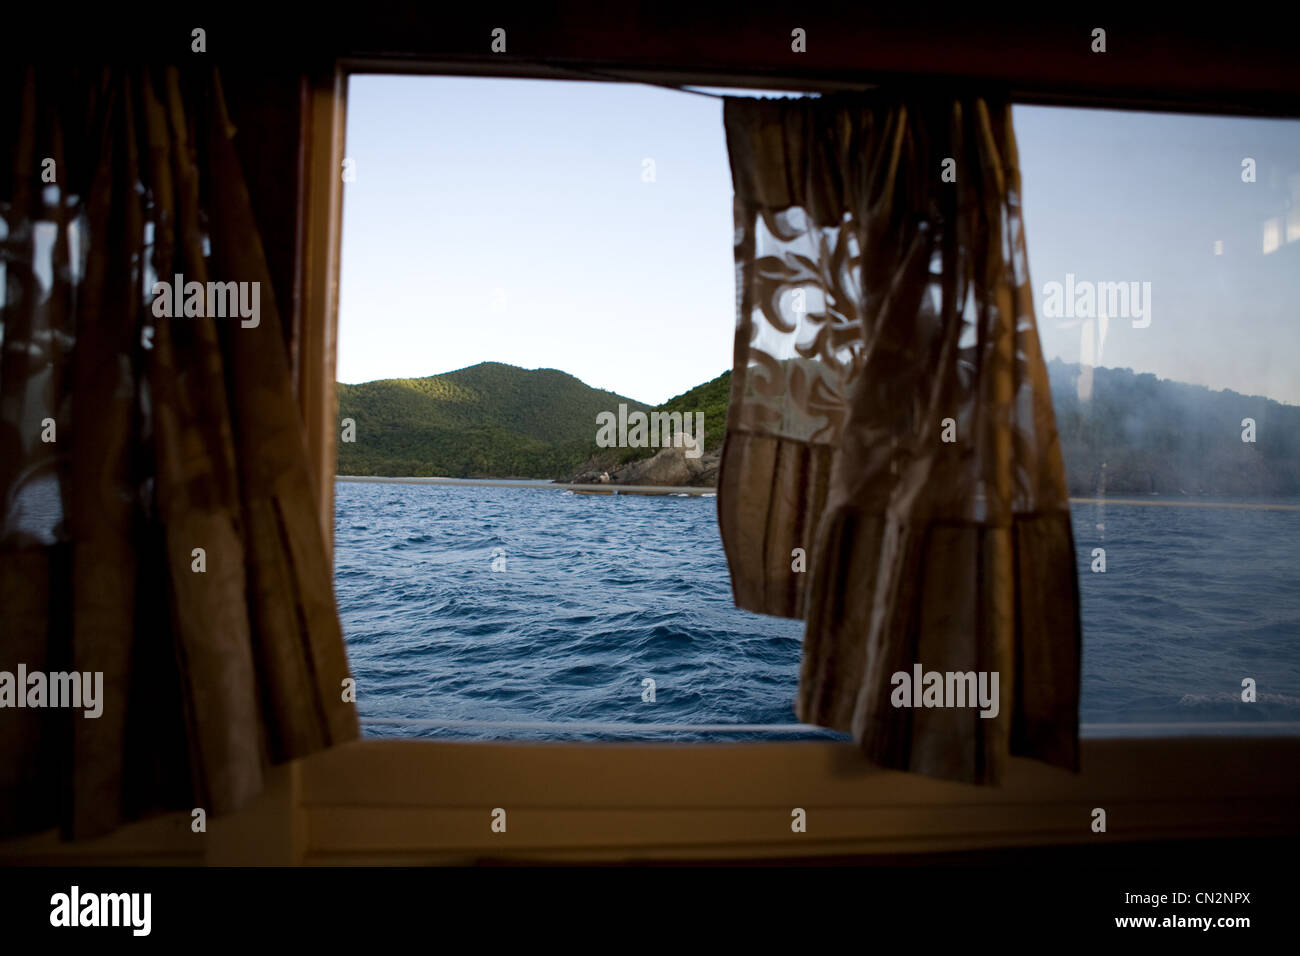 View through boat window, St John, US Virgin Islands - Stock Image